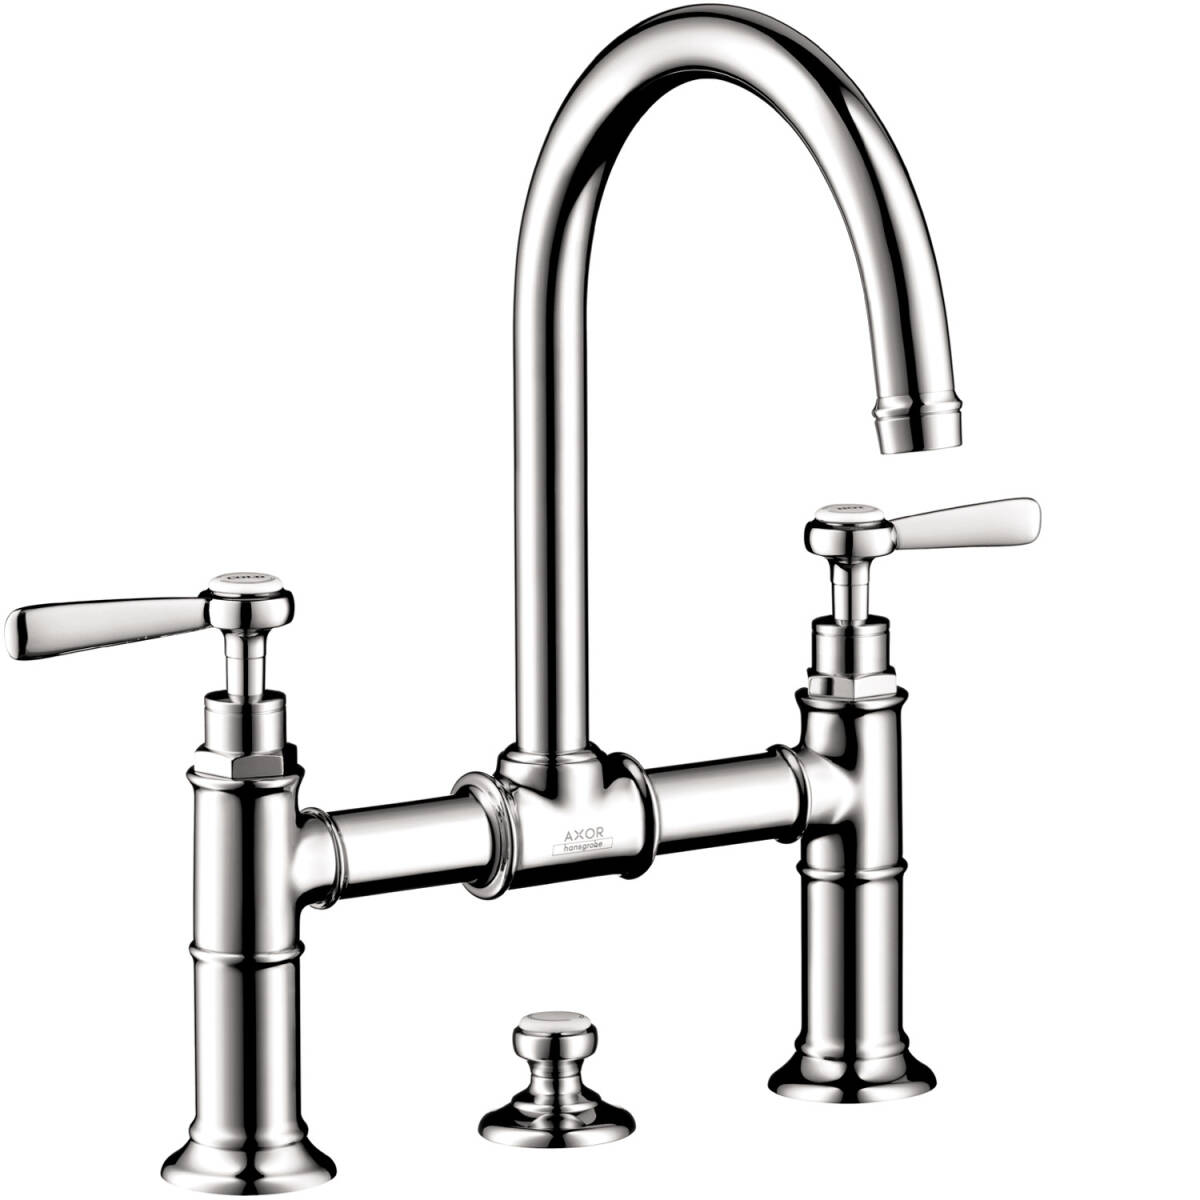 2-handle basin mixer 220 with lever handles and pop-up waste set, Chrome, 16511001